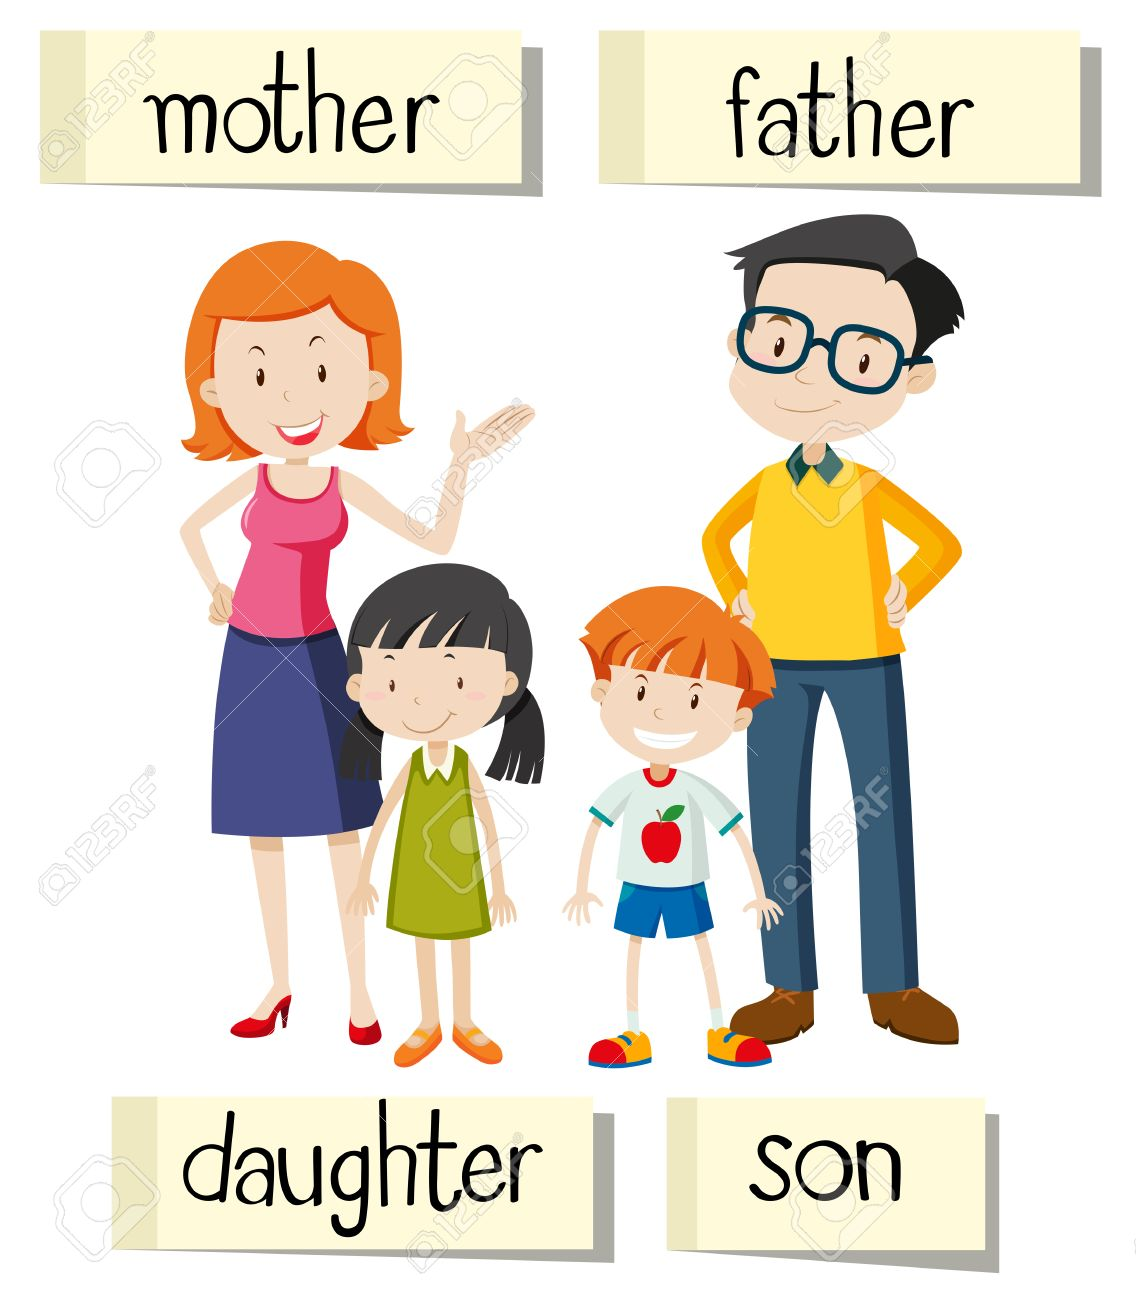 members clipart flashcards wordcard clip cliparts illustration vector flashcard father mother daughter word royalty clipartmag graphic identify related together keywords